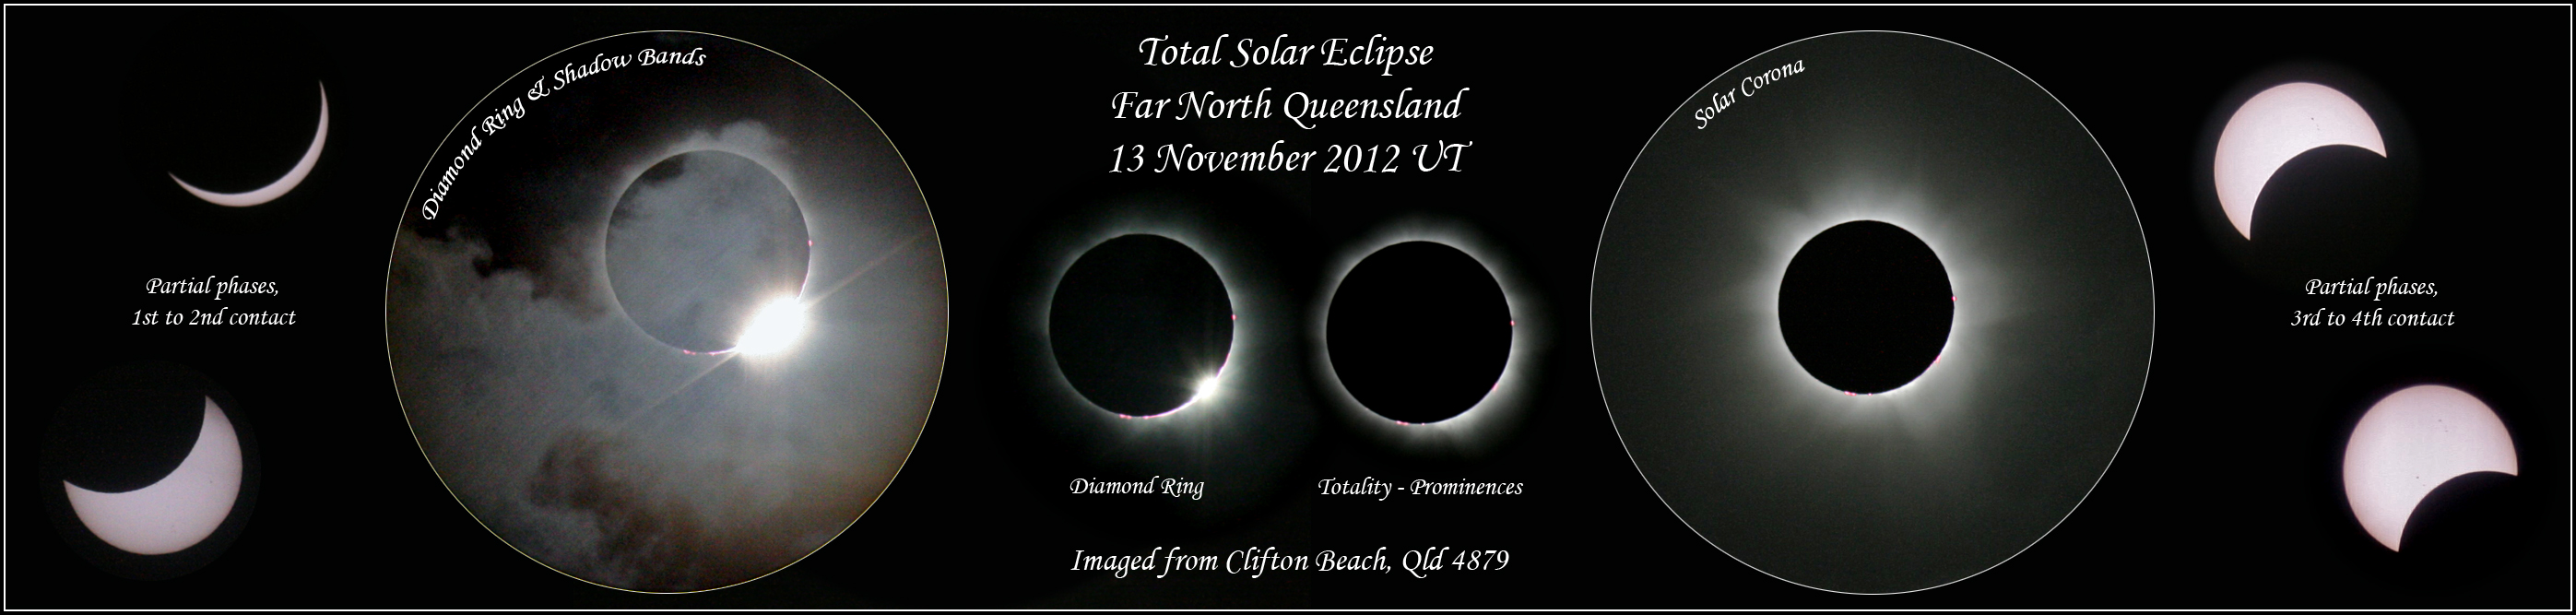 Total Solar Eclipse, Nov 2012